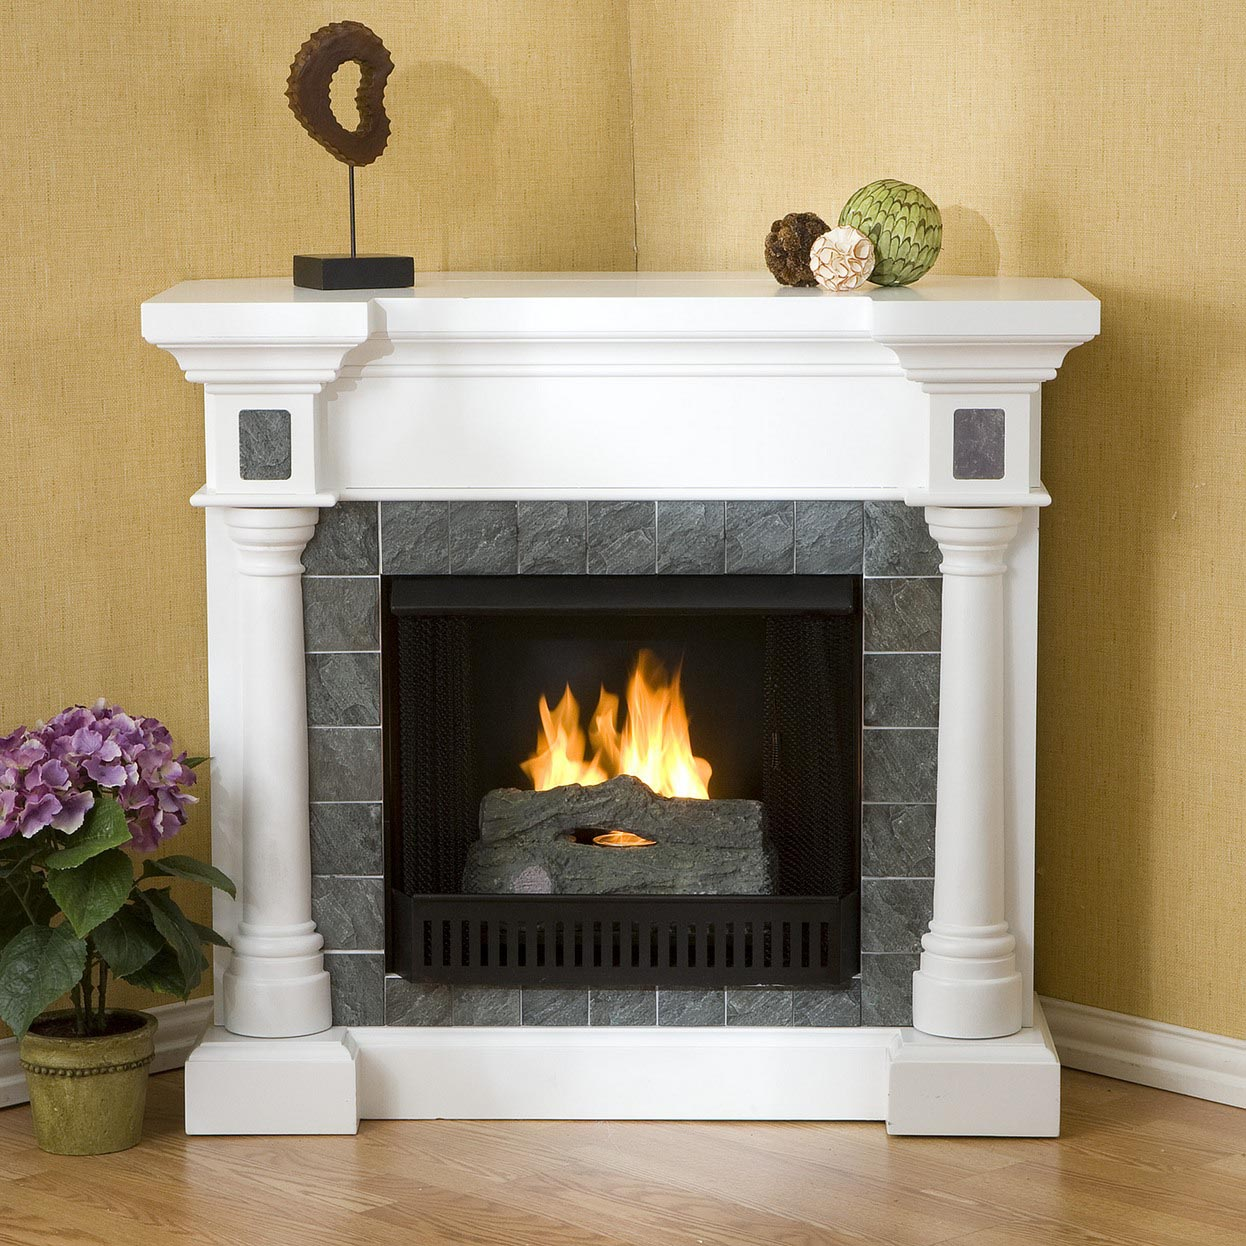 Stone Electric Fireplace Is A Really Good Alternative That